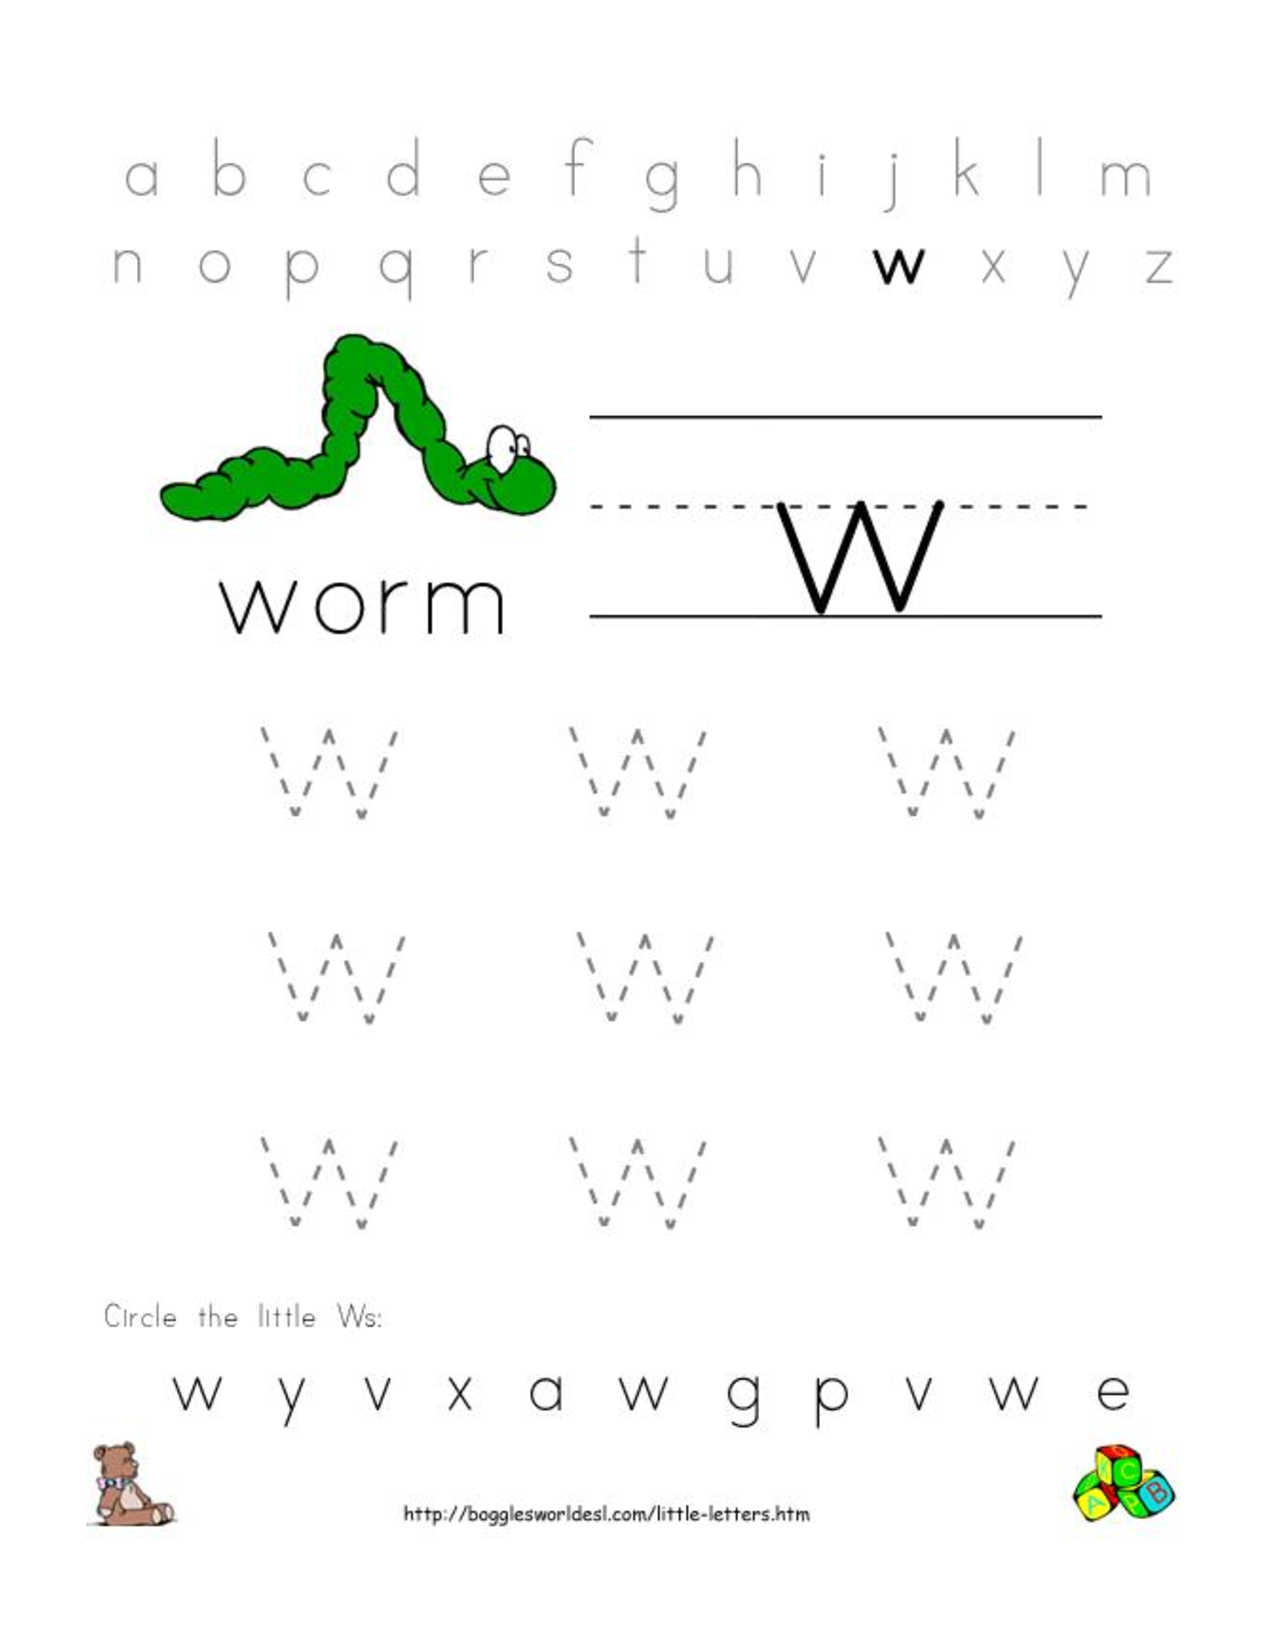 Printables Letter W Worksheets alphabet worksheets for preschoolers worksheet little letter w doc preschool la pinterest w